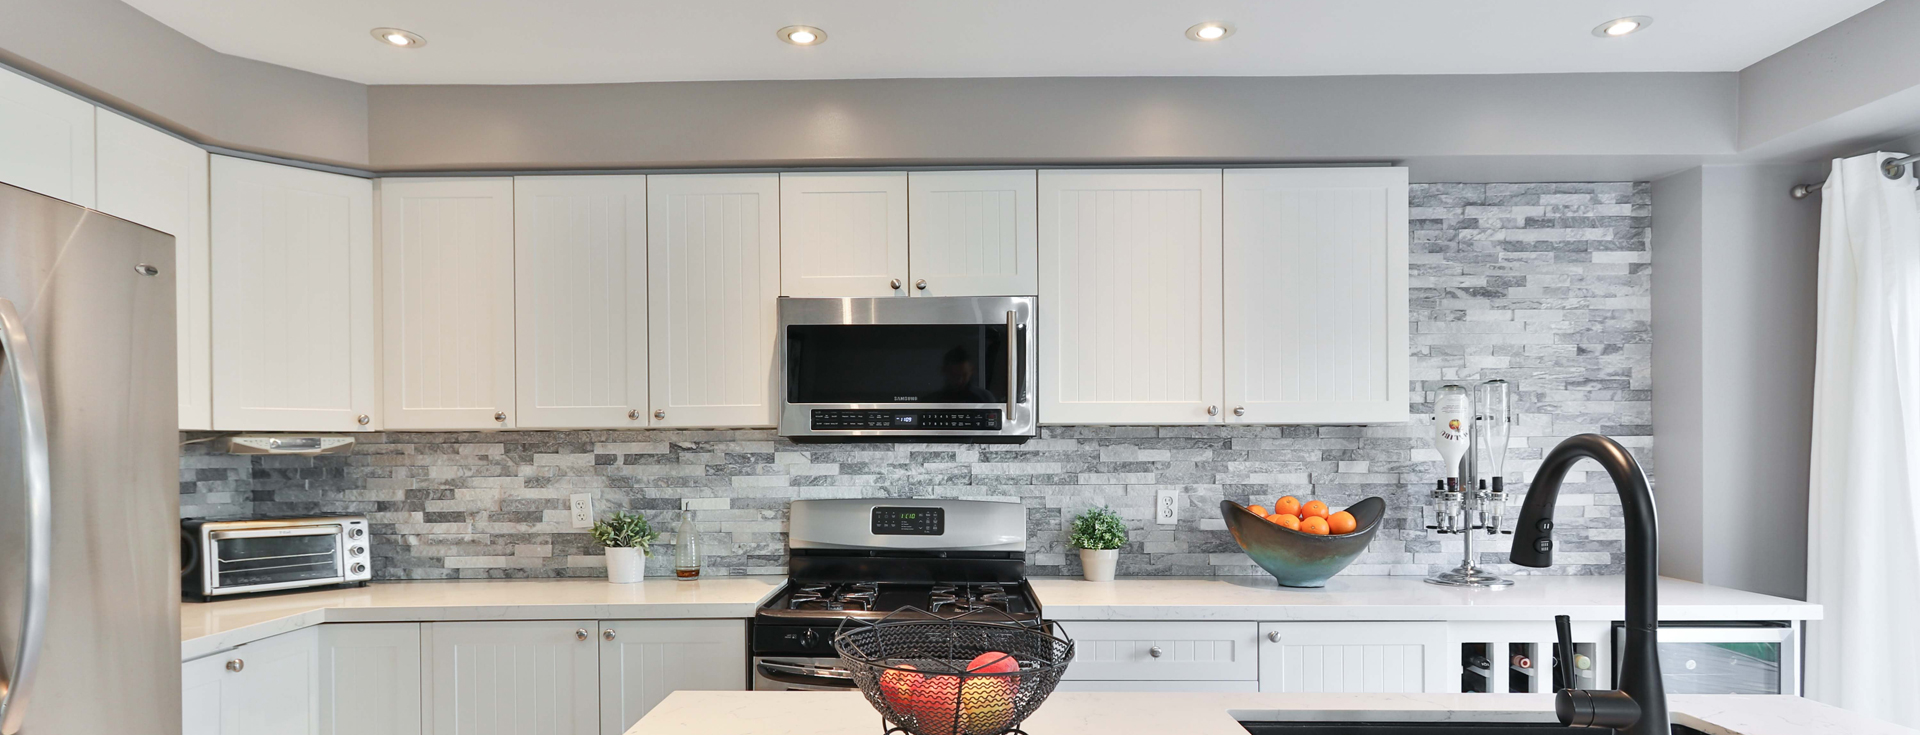 kitchen recessed lighting planning the